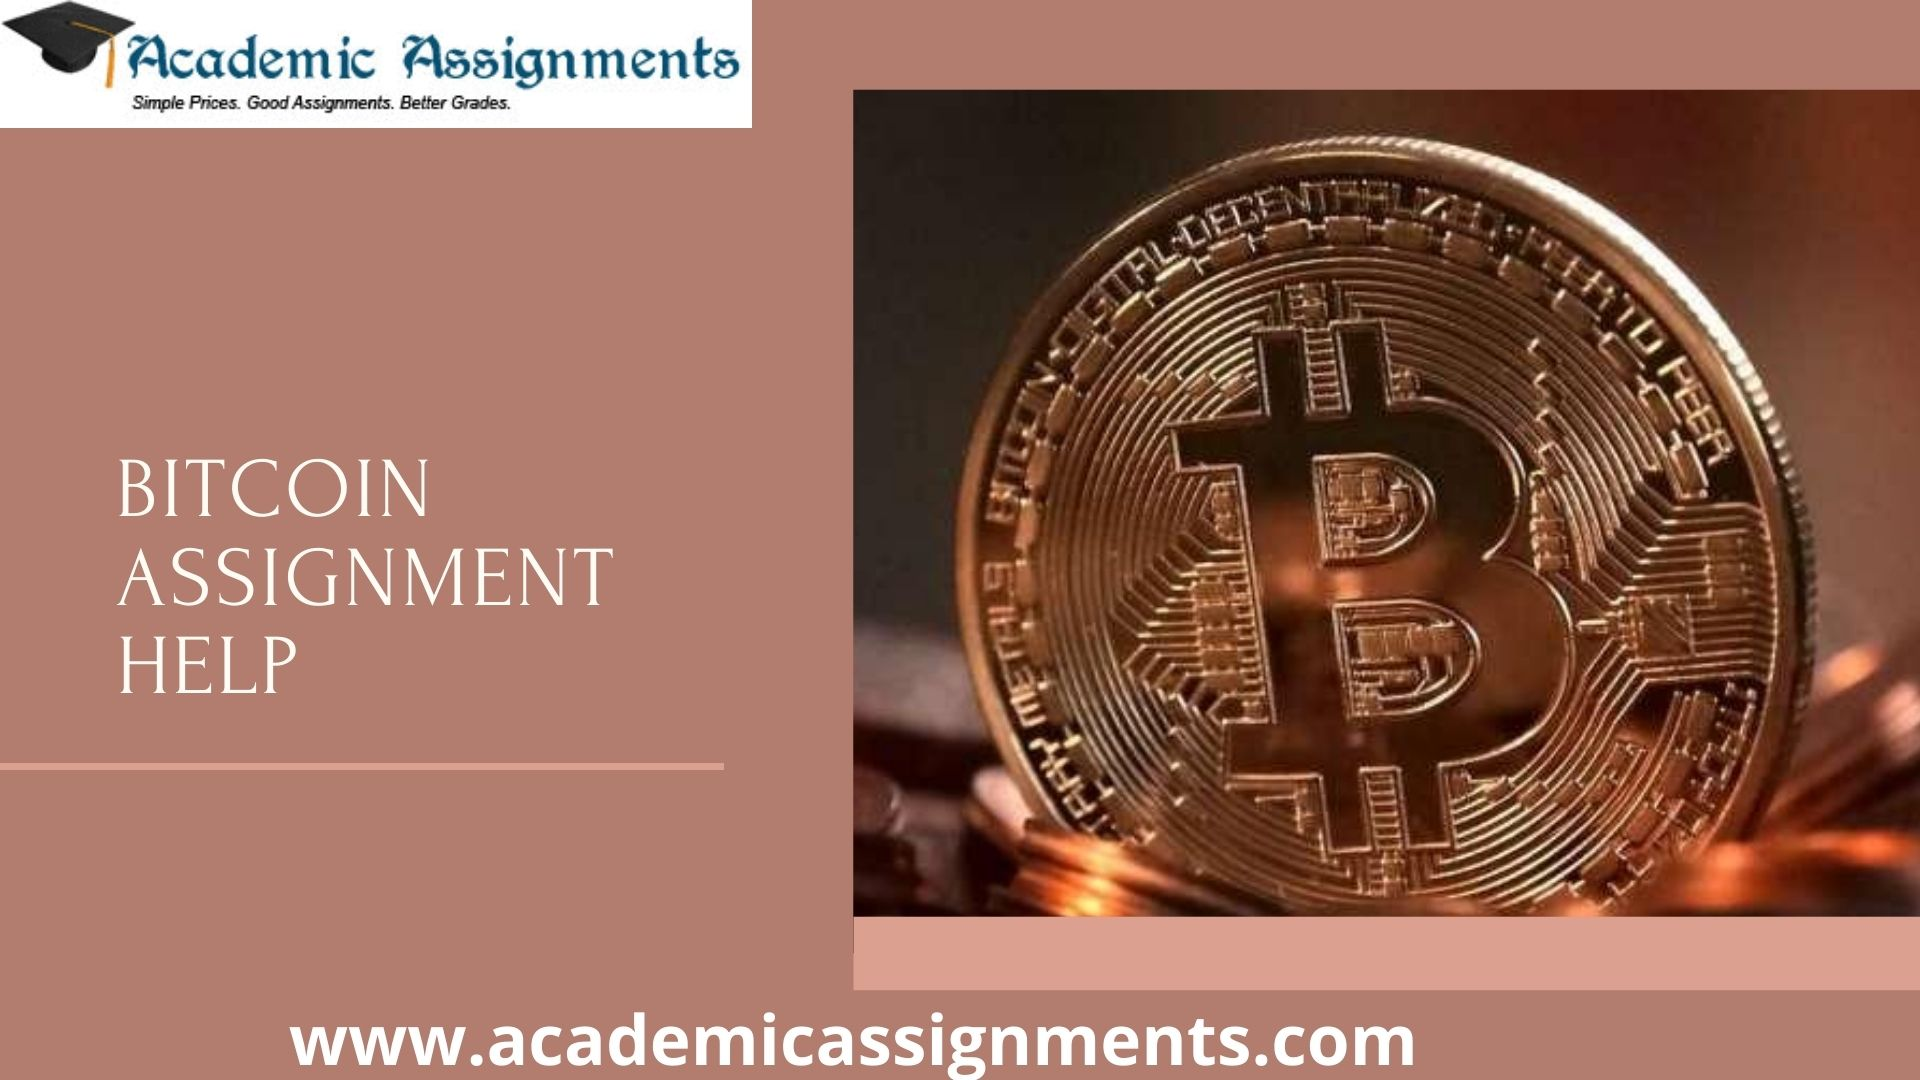 Bitcoin Assignment Help by Academic Assignments